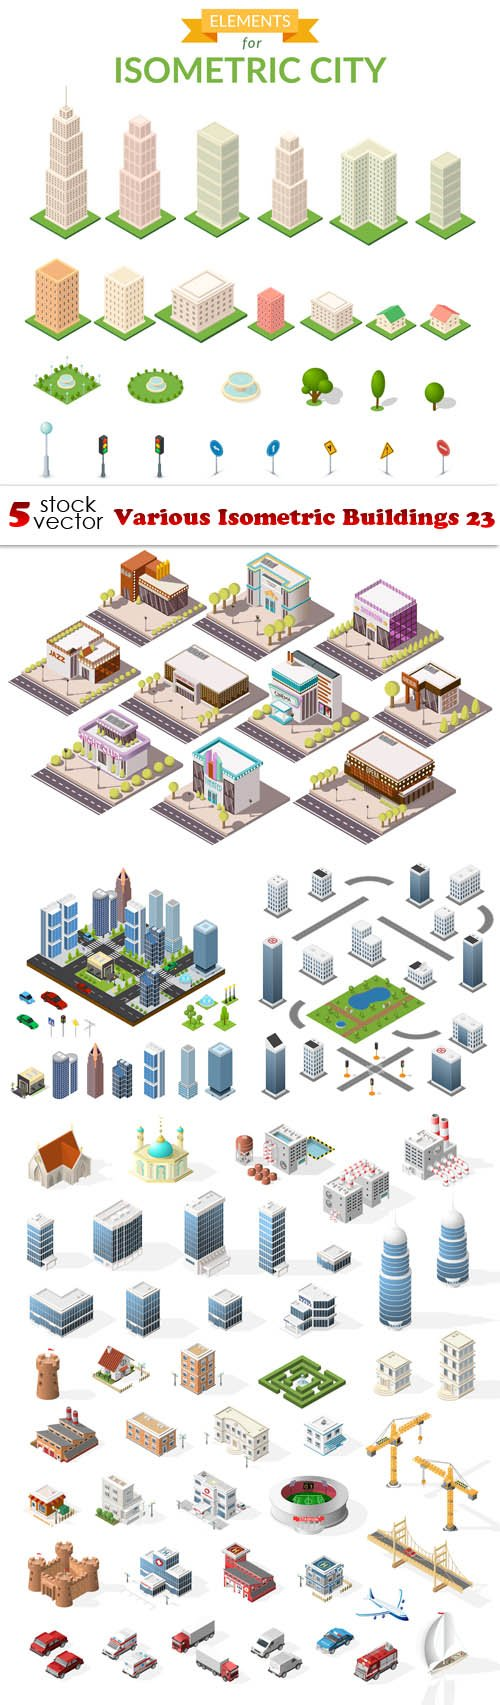 Vectors - Various Isometric Buildings 23